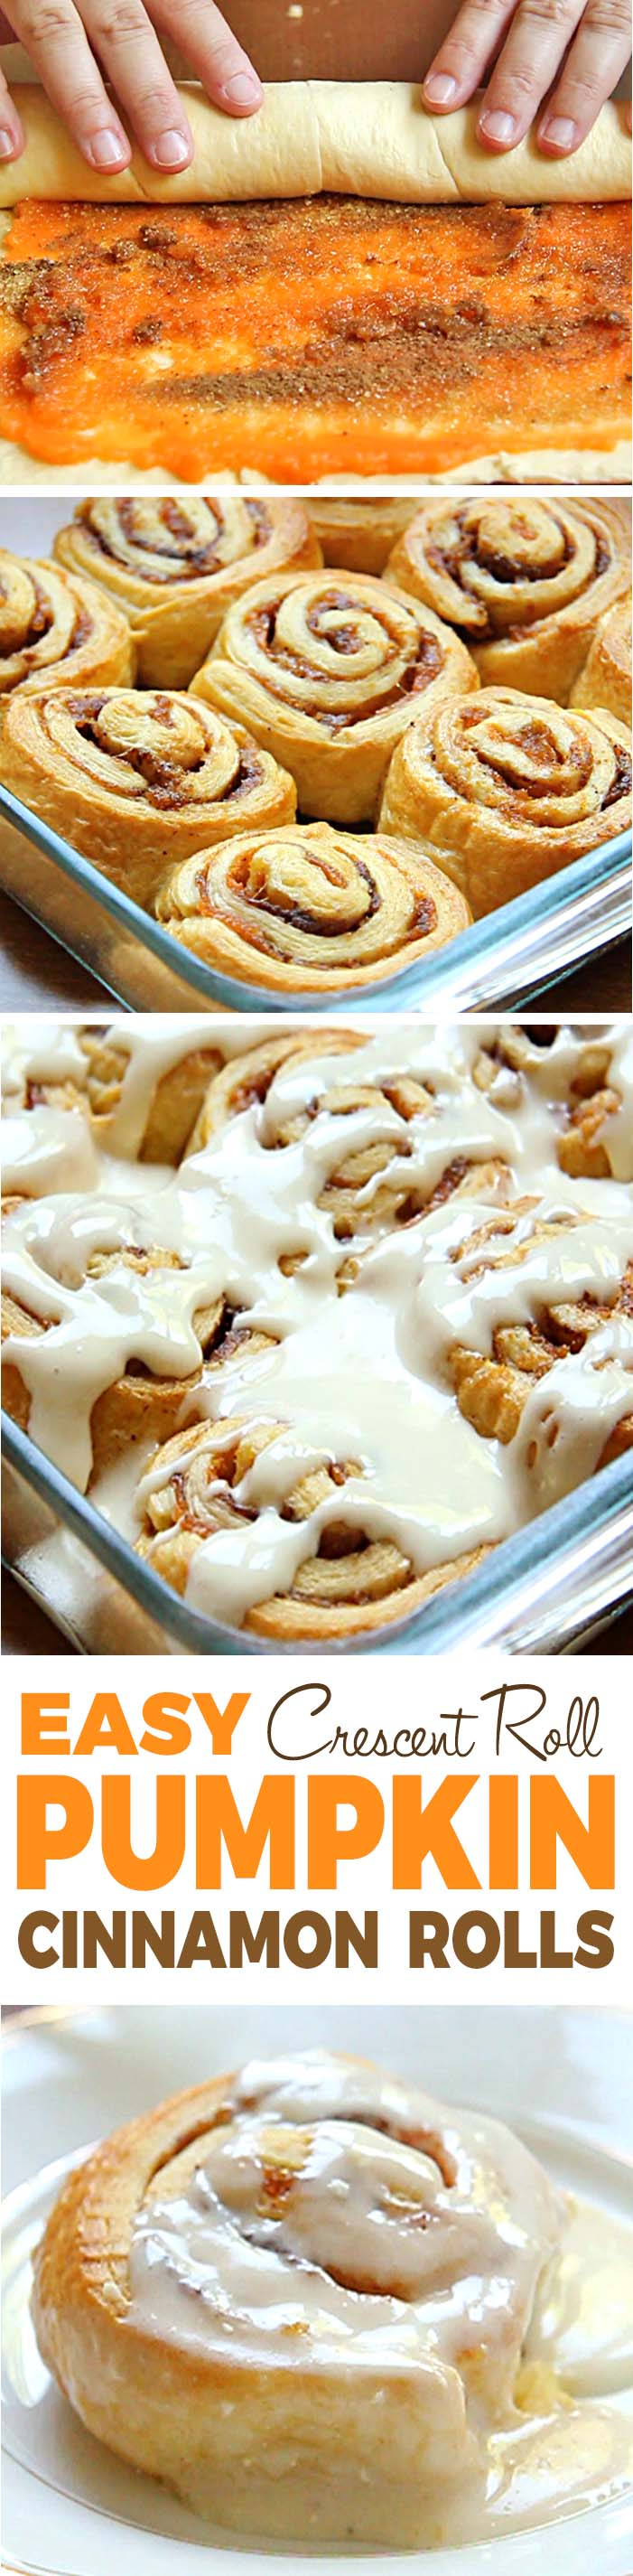 Skip the yeast, and dough....try Easy Pumpkin Cinnamon Rolls made with crescent roll dough and topped with a homemade cream cheese frosting. The perfect fall breakfast!